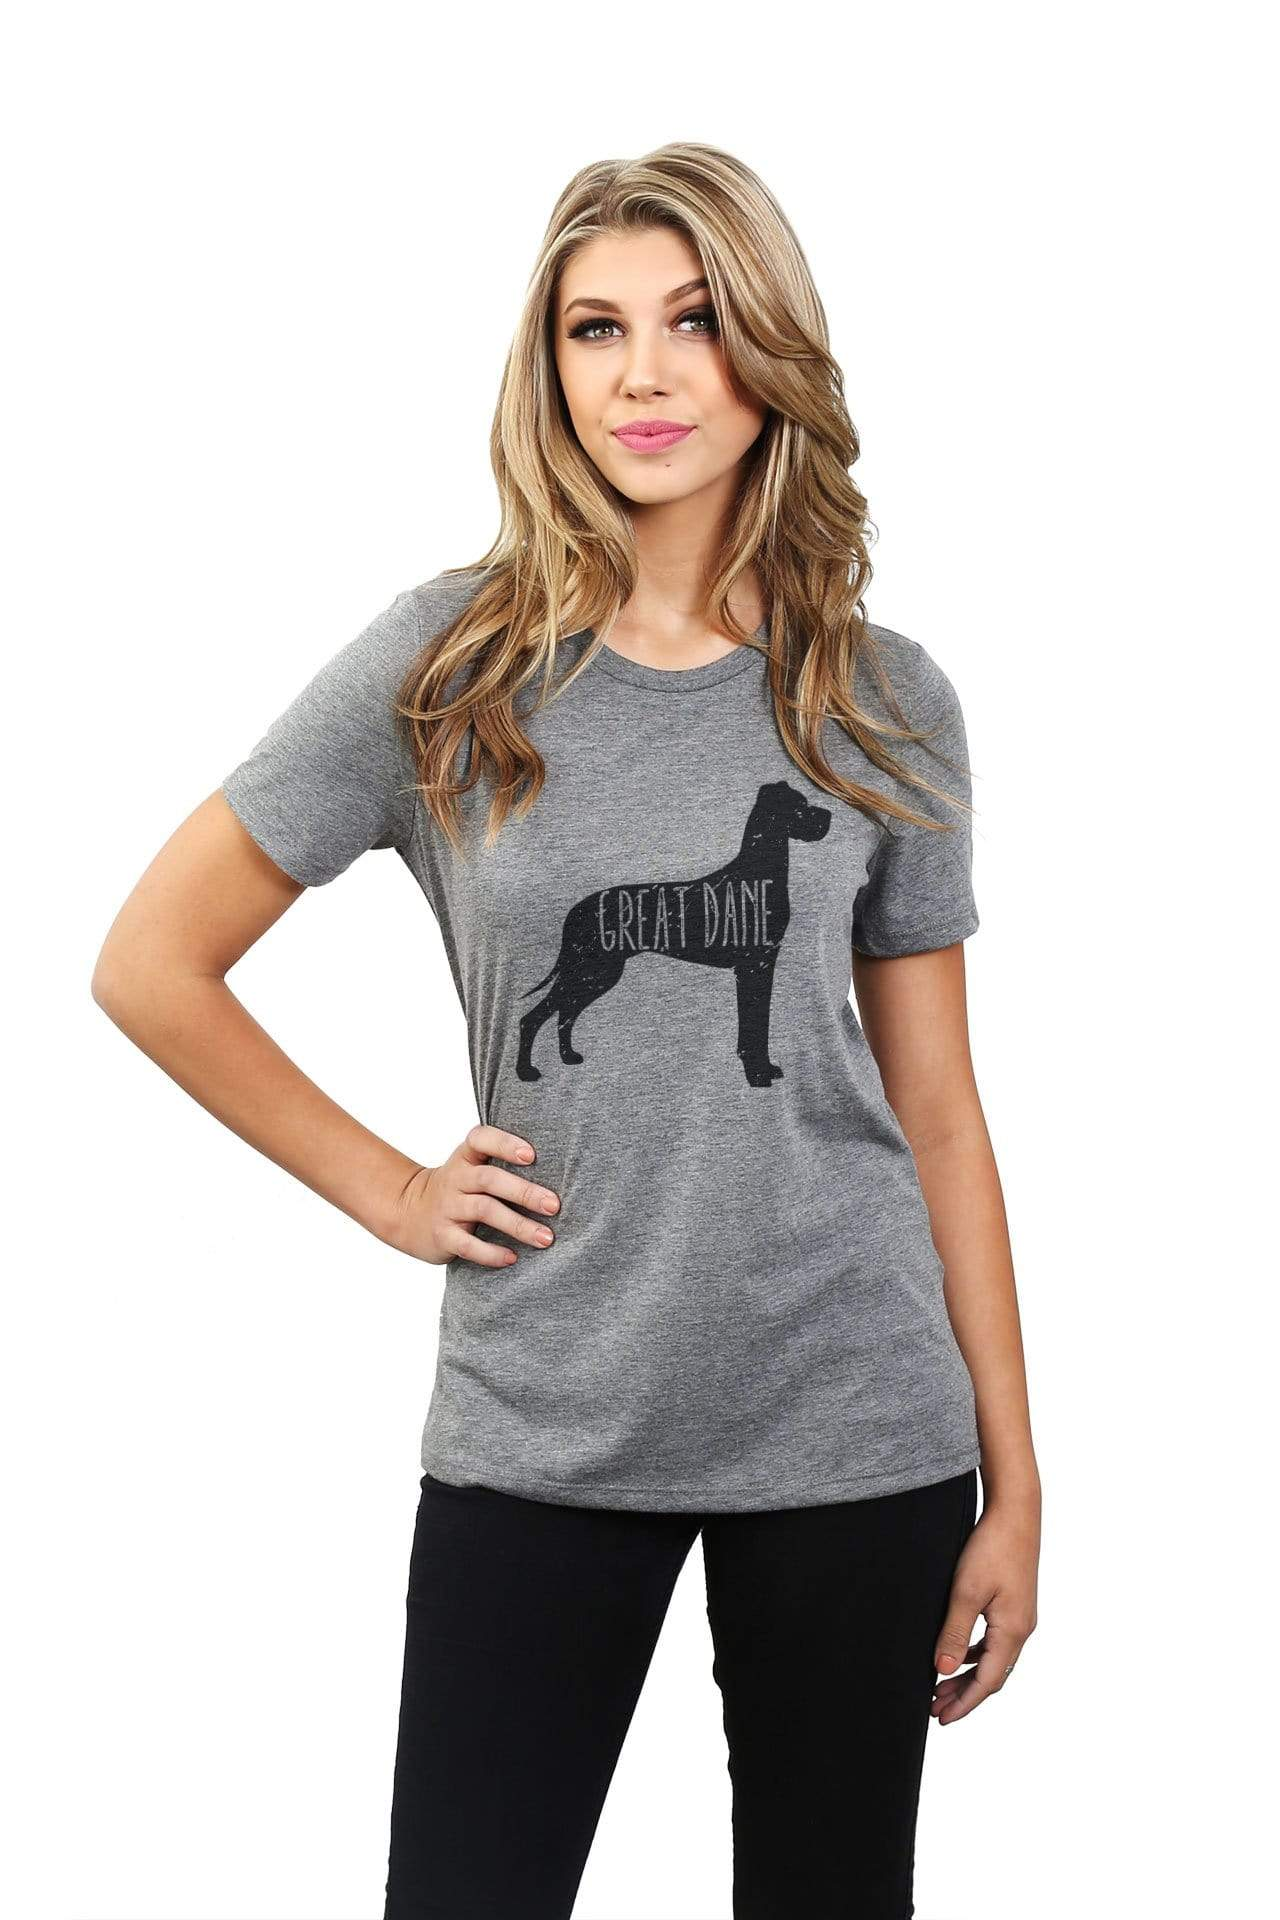 Great Dane Dog Silhouette Women Heather Grey Relaxed Crew T-Shirt Tee Top